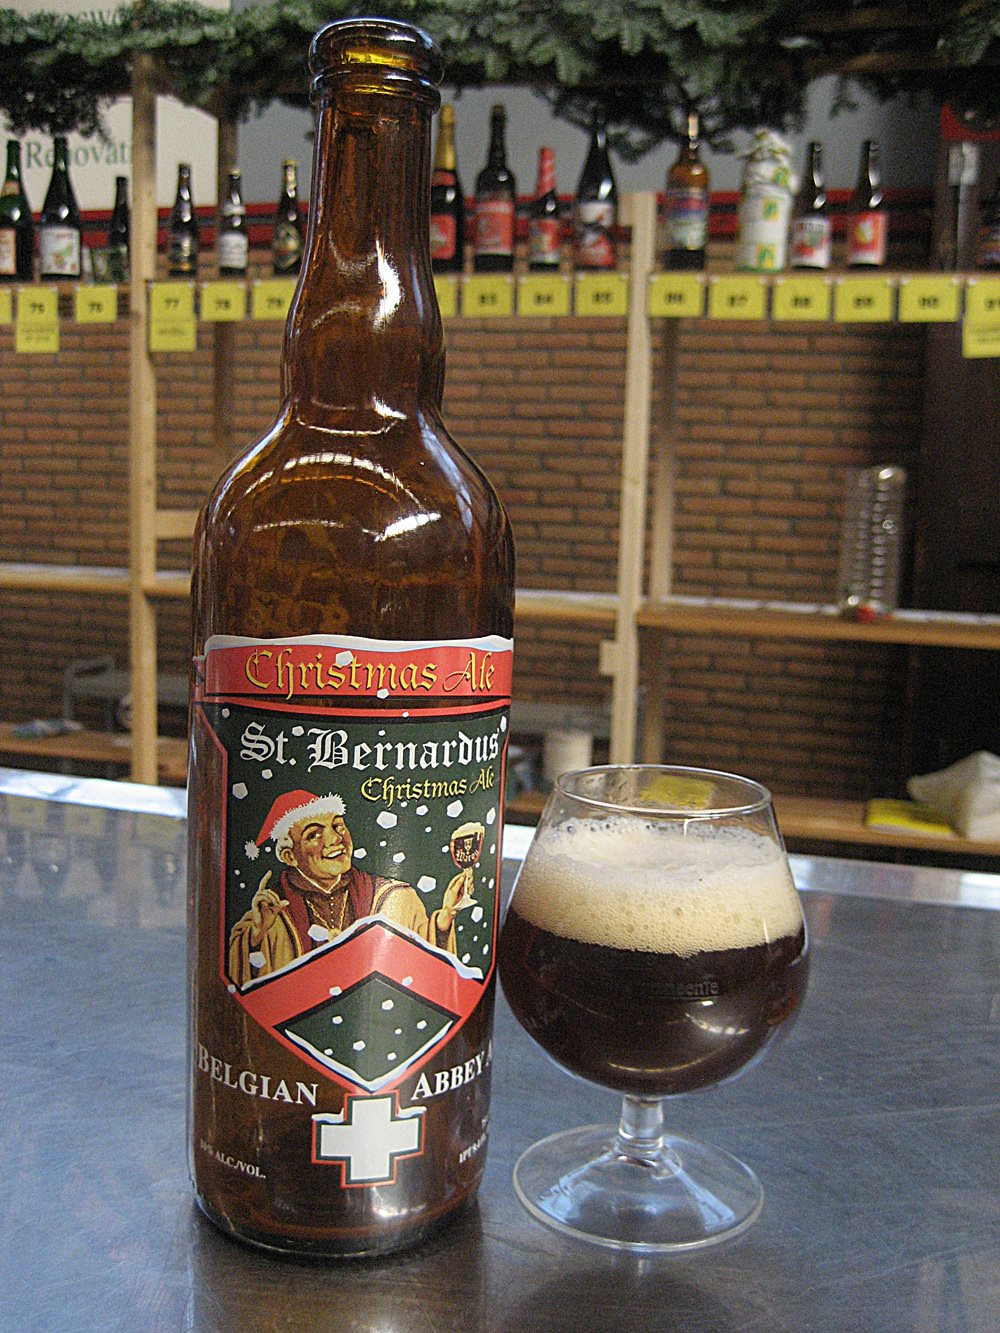 One of the Belgian Abbey beers - Photo courtesy of William Roelens